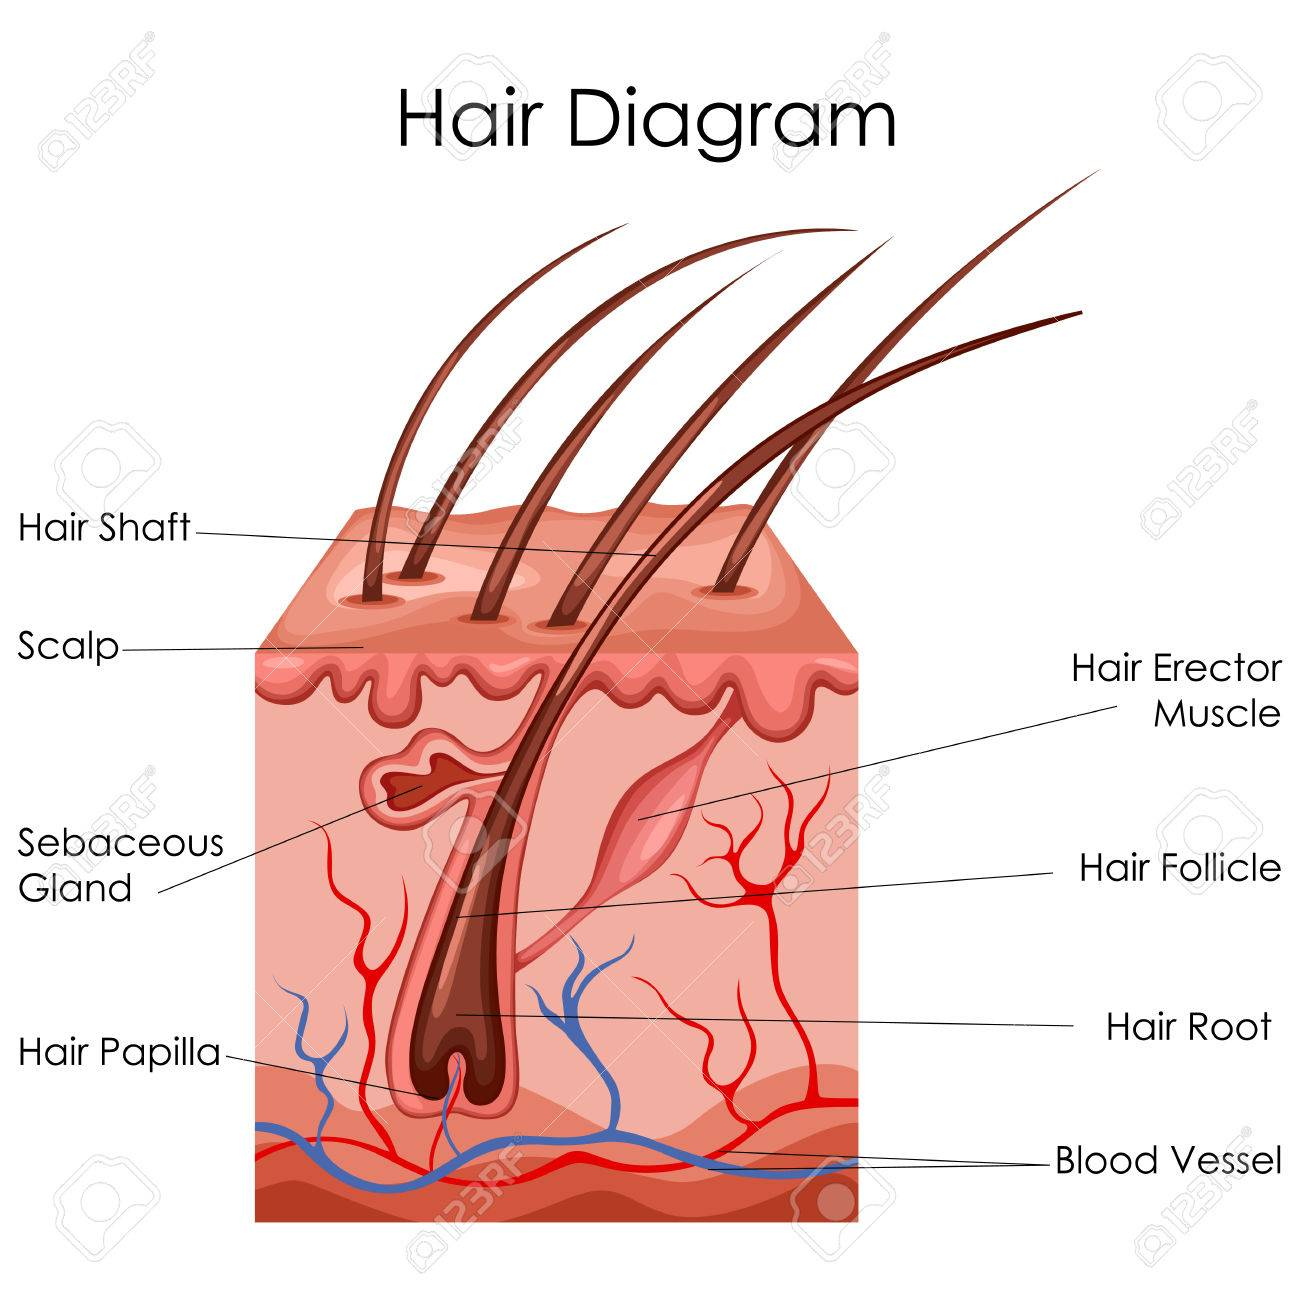 Diagram Hair Root - All Kind Of Wiring Diagrams •